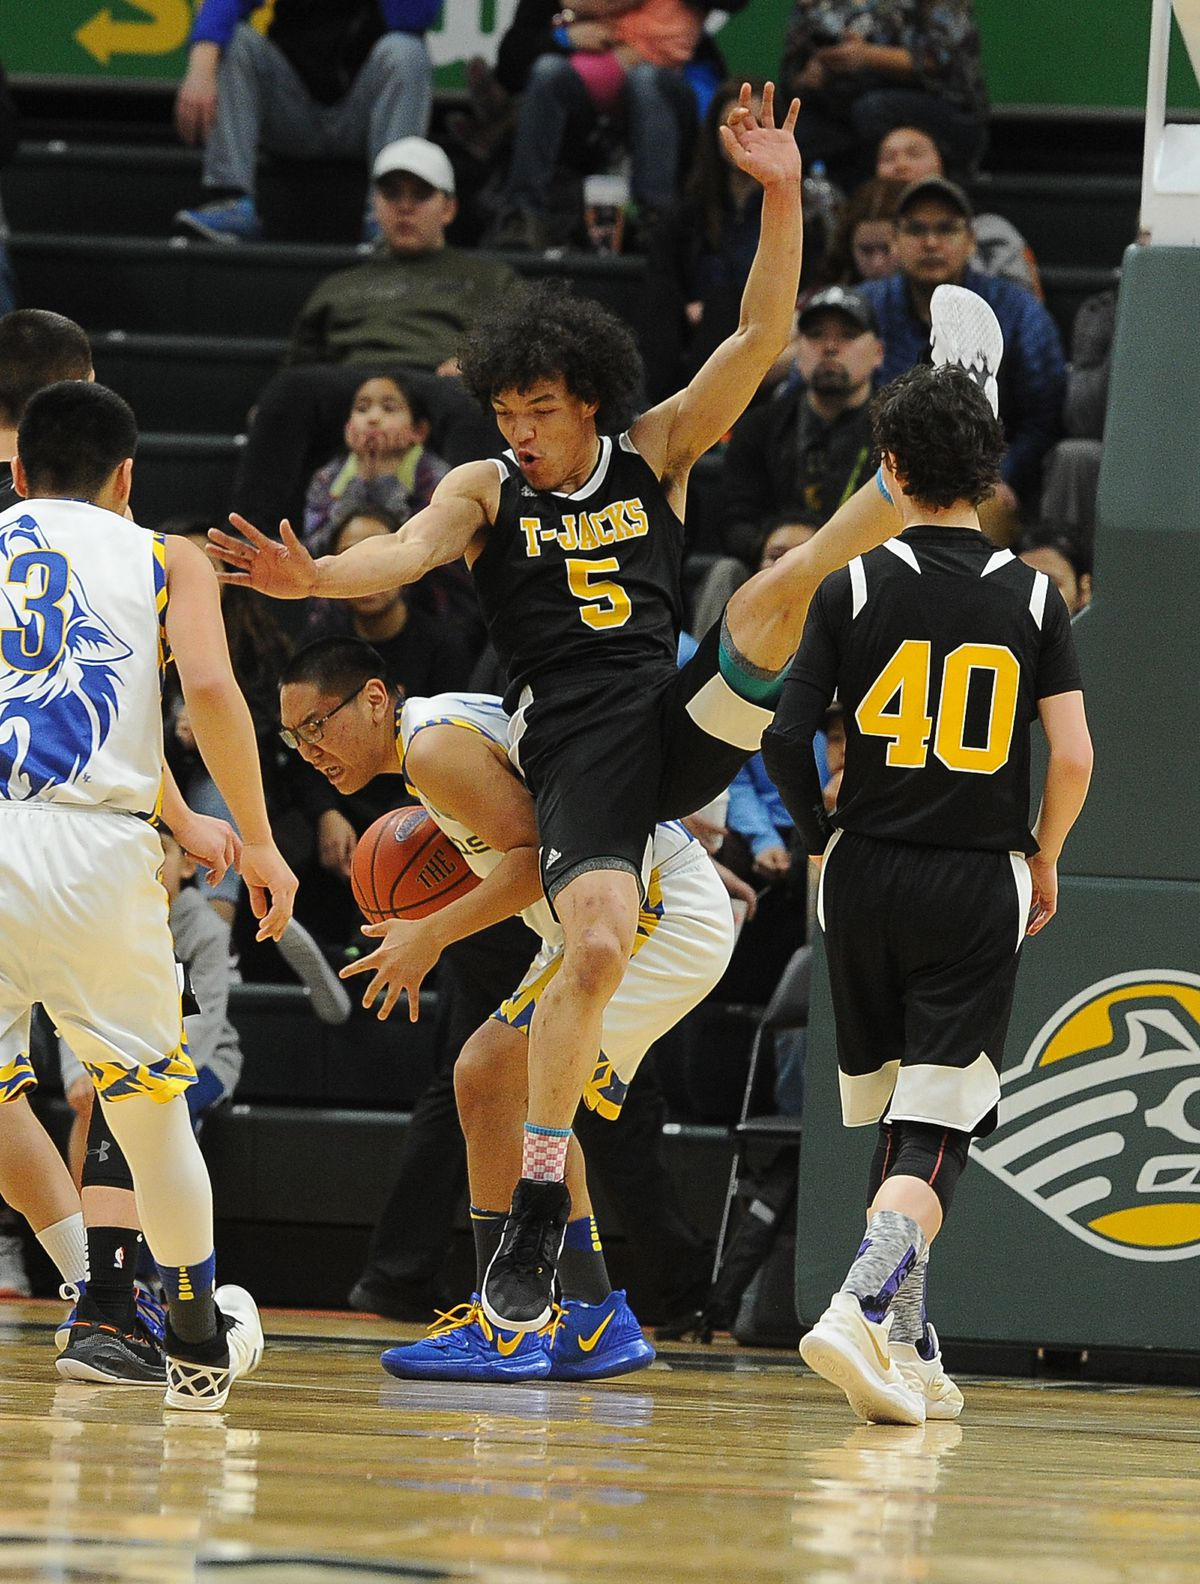 King Cove's Jason Durate comes down on top of Nunamuit's Jacob Ahgook in the Class 1A boys state basketball championship game at the Alaska Airlines Center on Saturday, March 16, 2019. King Cove defeated Nunamuit 59-54. (Photo by Bob Hallinen)